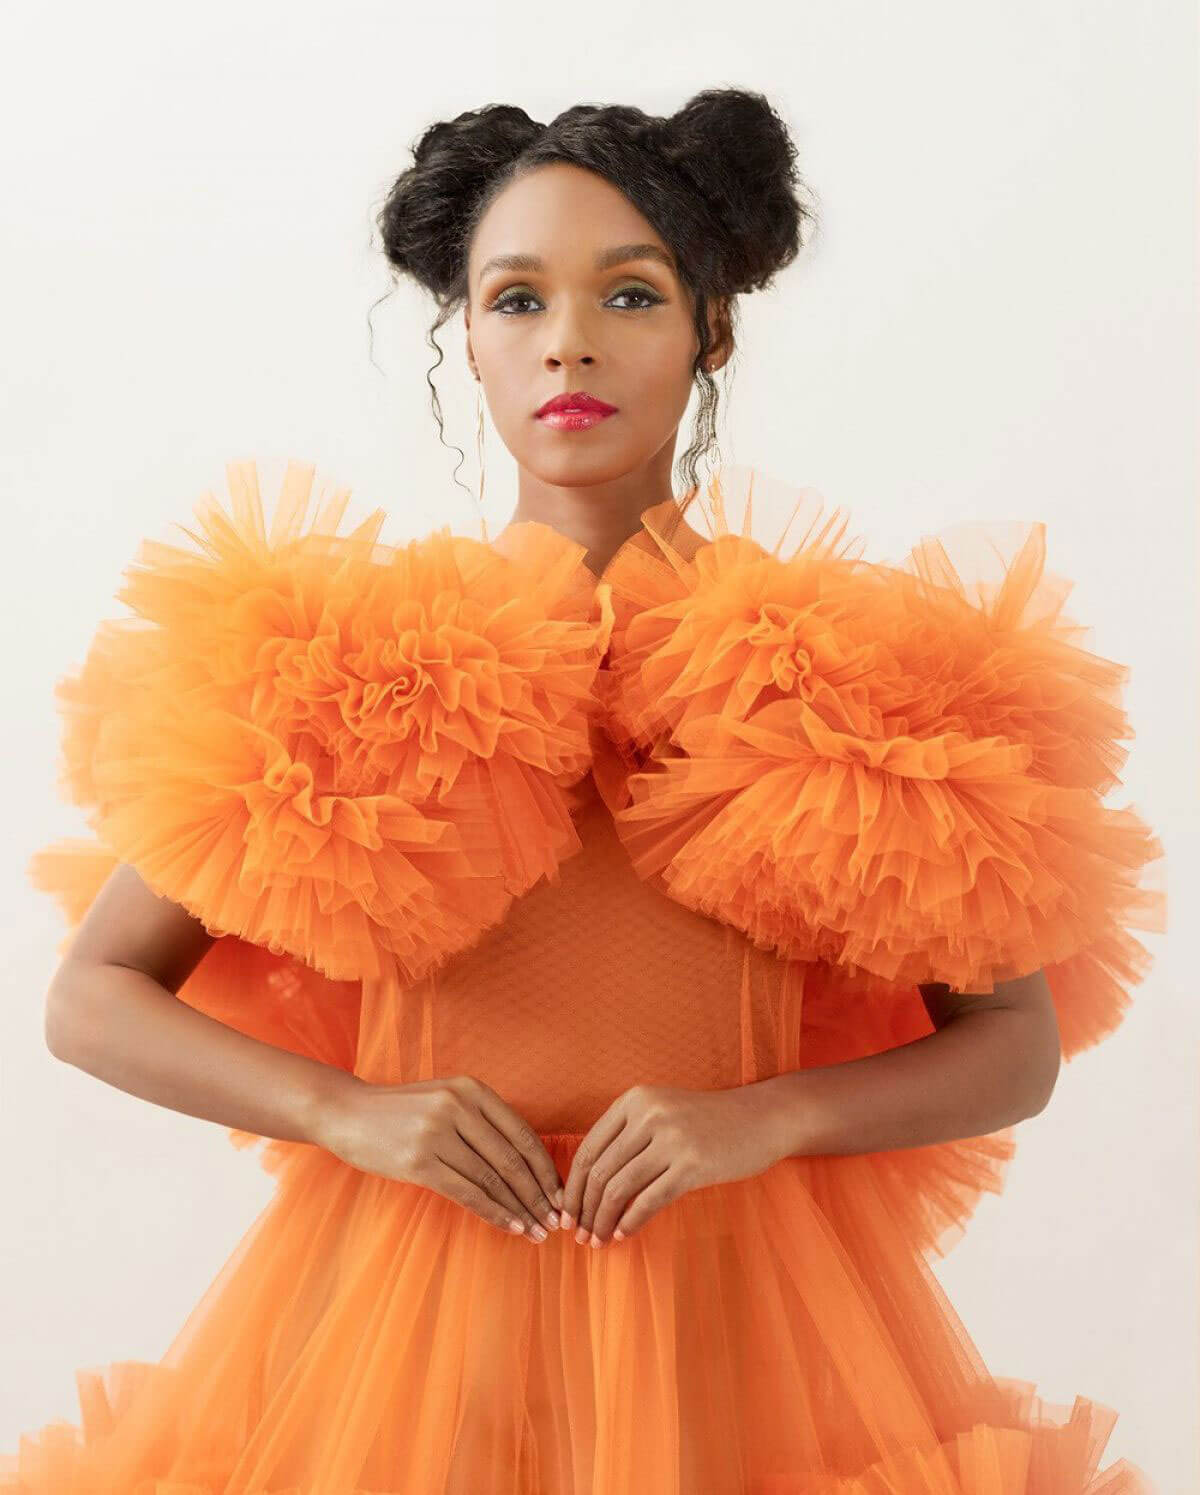 Janelle Monae in Allure Magazine, July 2018 Issue 1